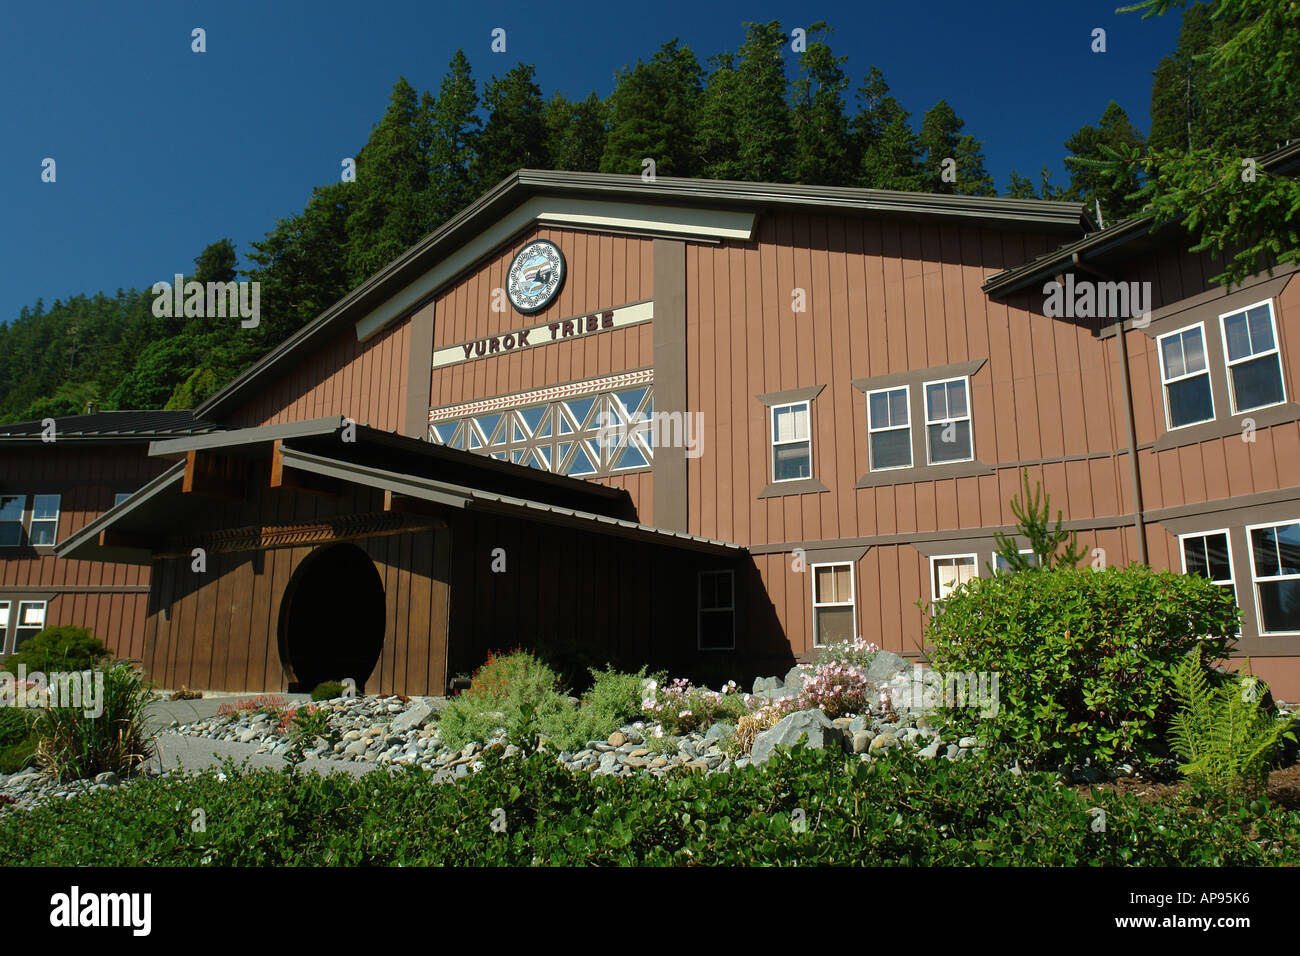 Admirable Yurok Stock Photos Yurok Stock Images Alamy Best Image Libraries Counlowcountryjoecom